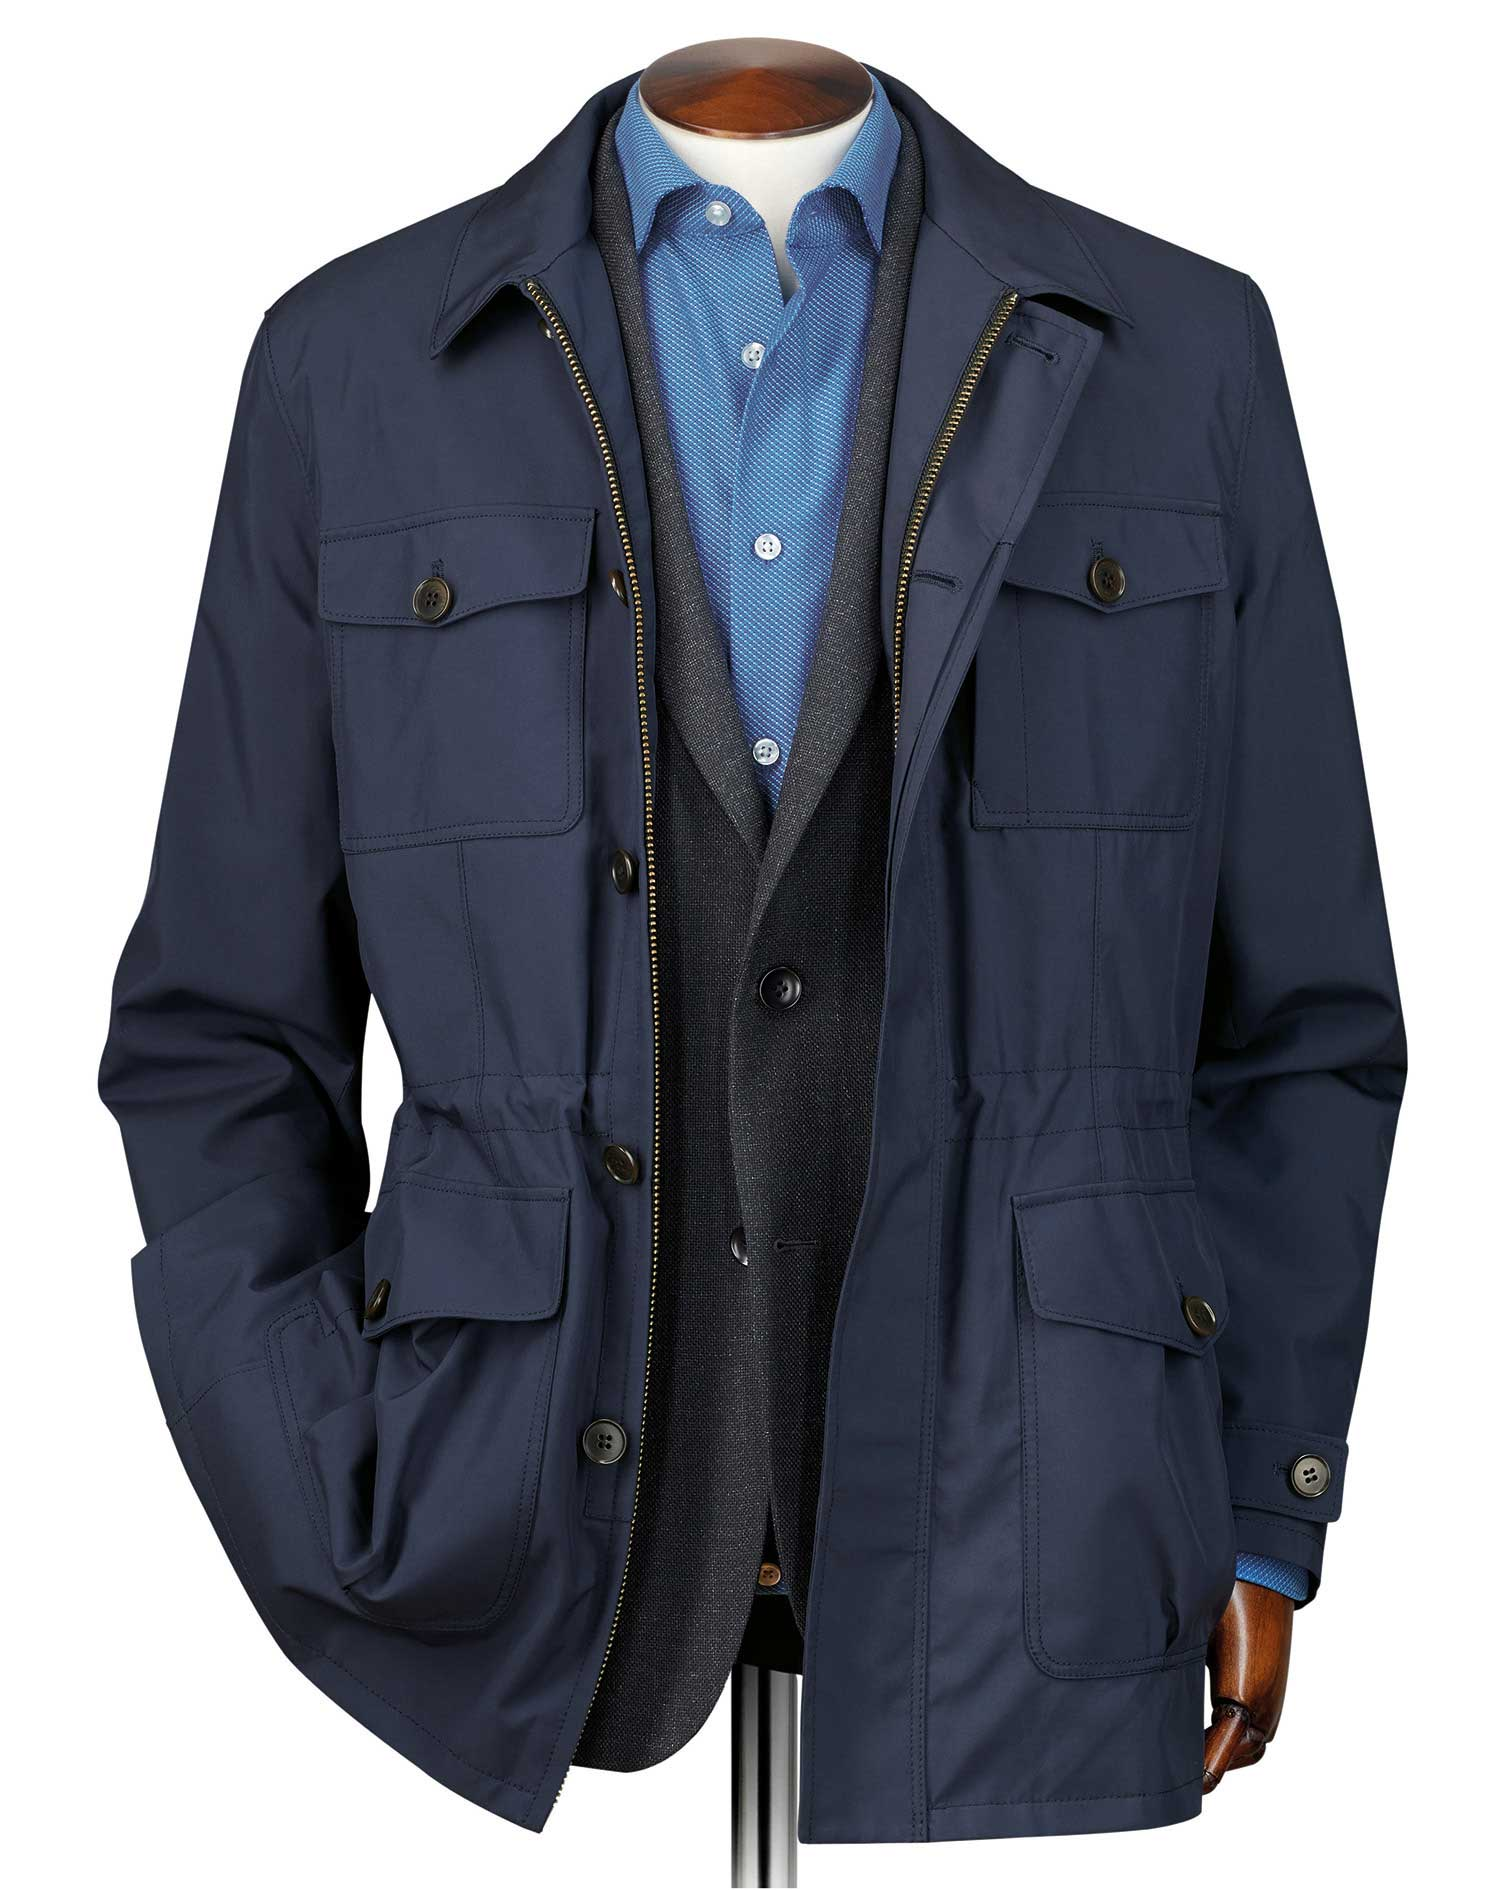 Navy Showerproof Field Coat Size 44 Regular by Charles Tyrwhitt